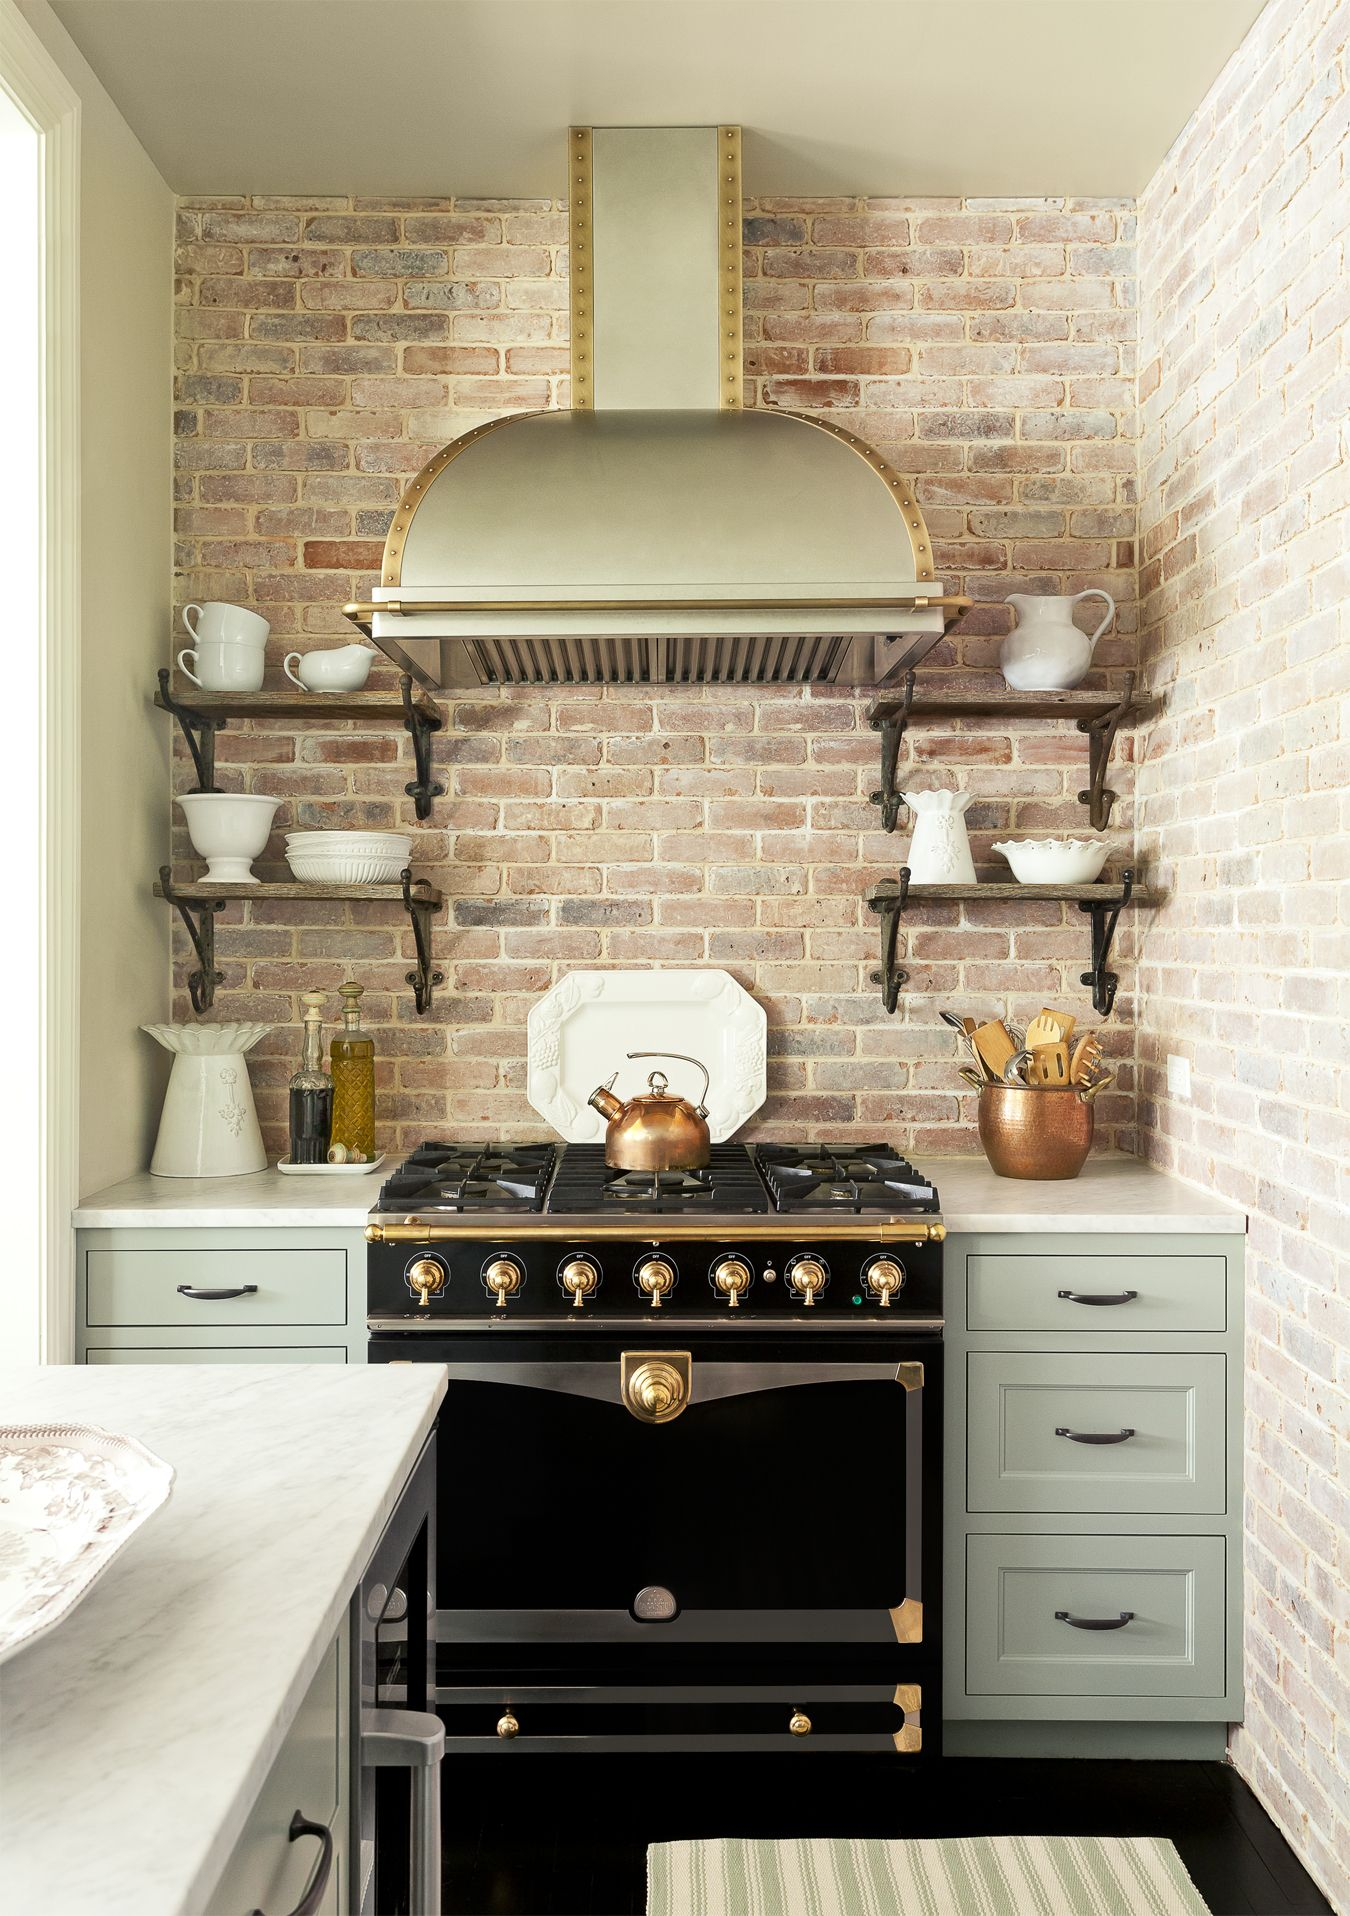 Black Appliances. Emily Gilbert. Brick Backsplash